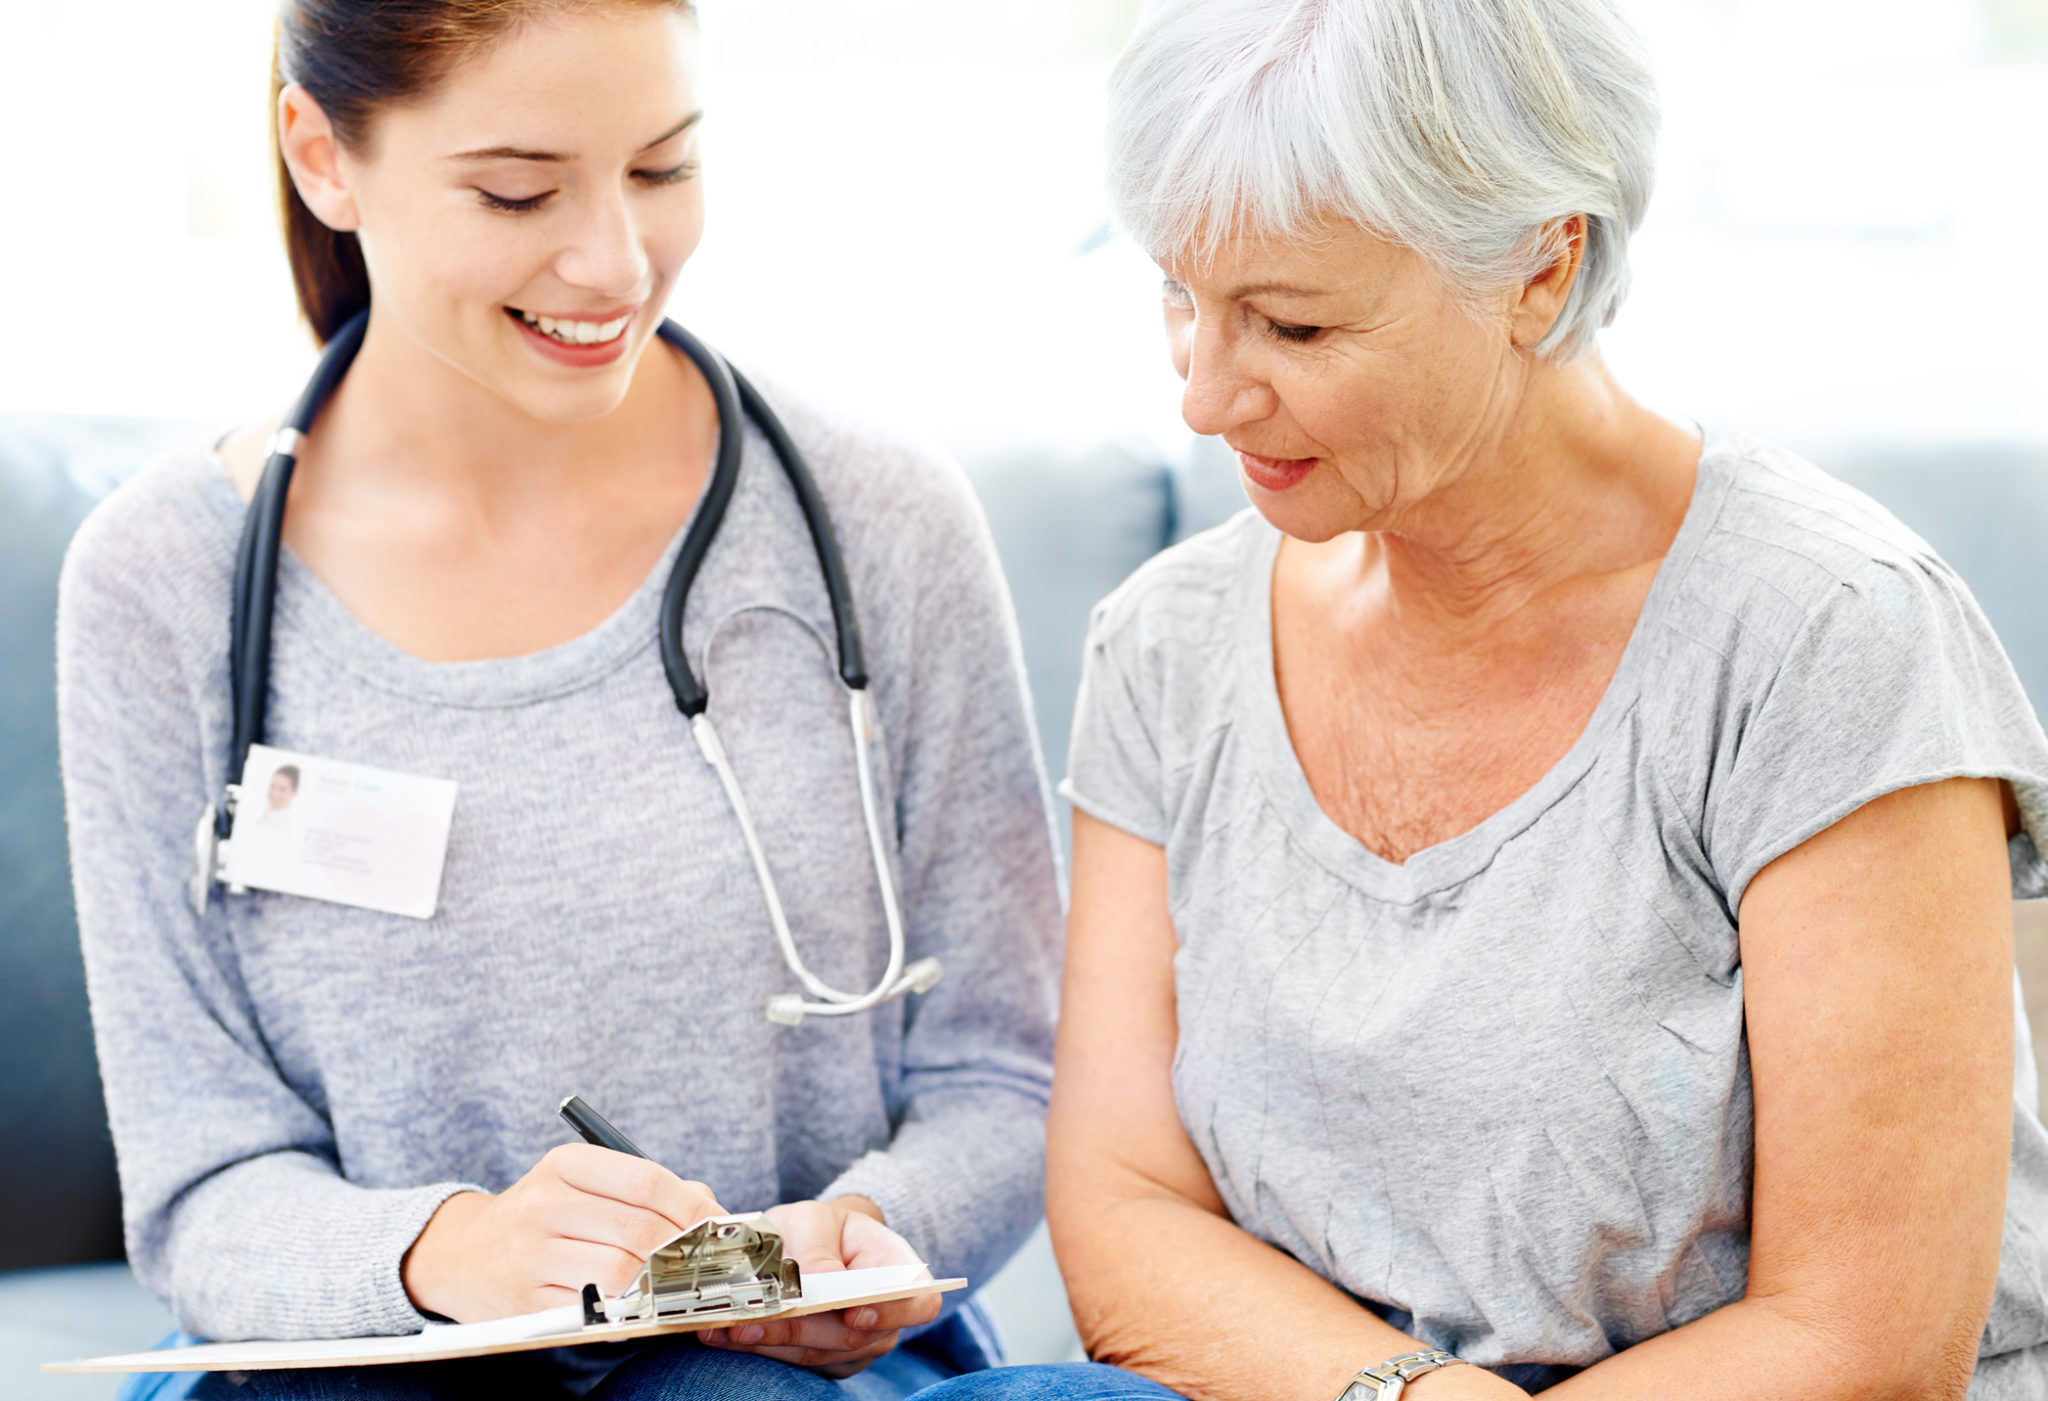 Senior Medical Appointments and Procedures Made Easier with These Tips